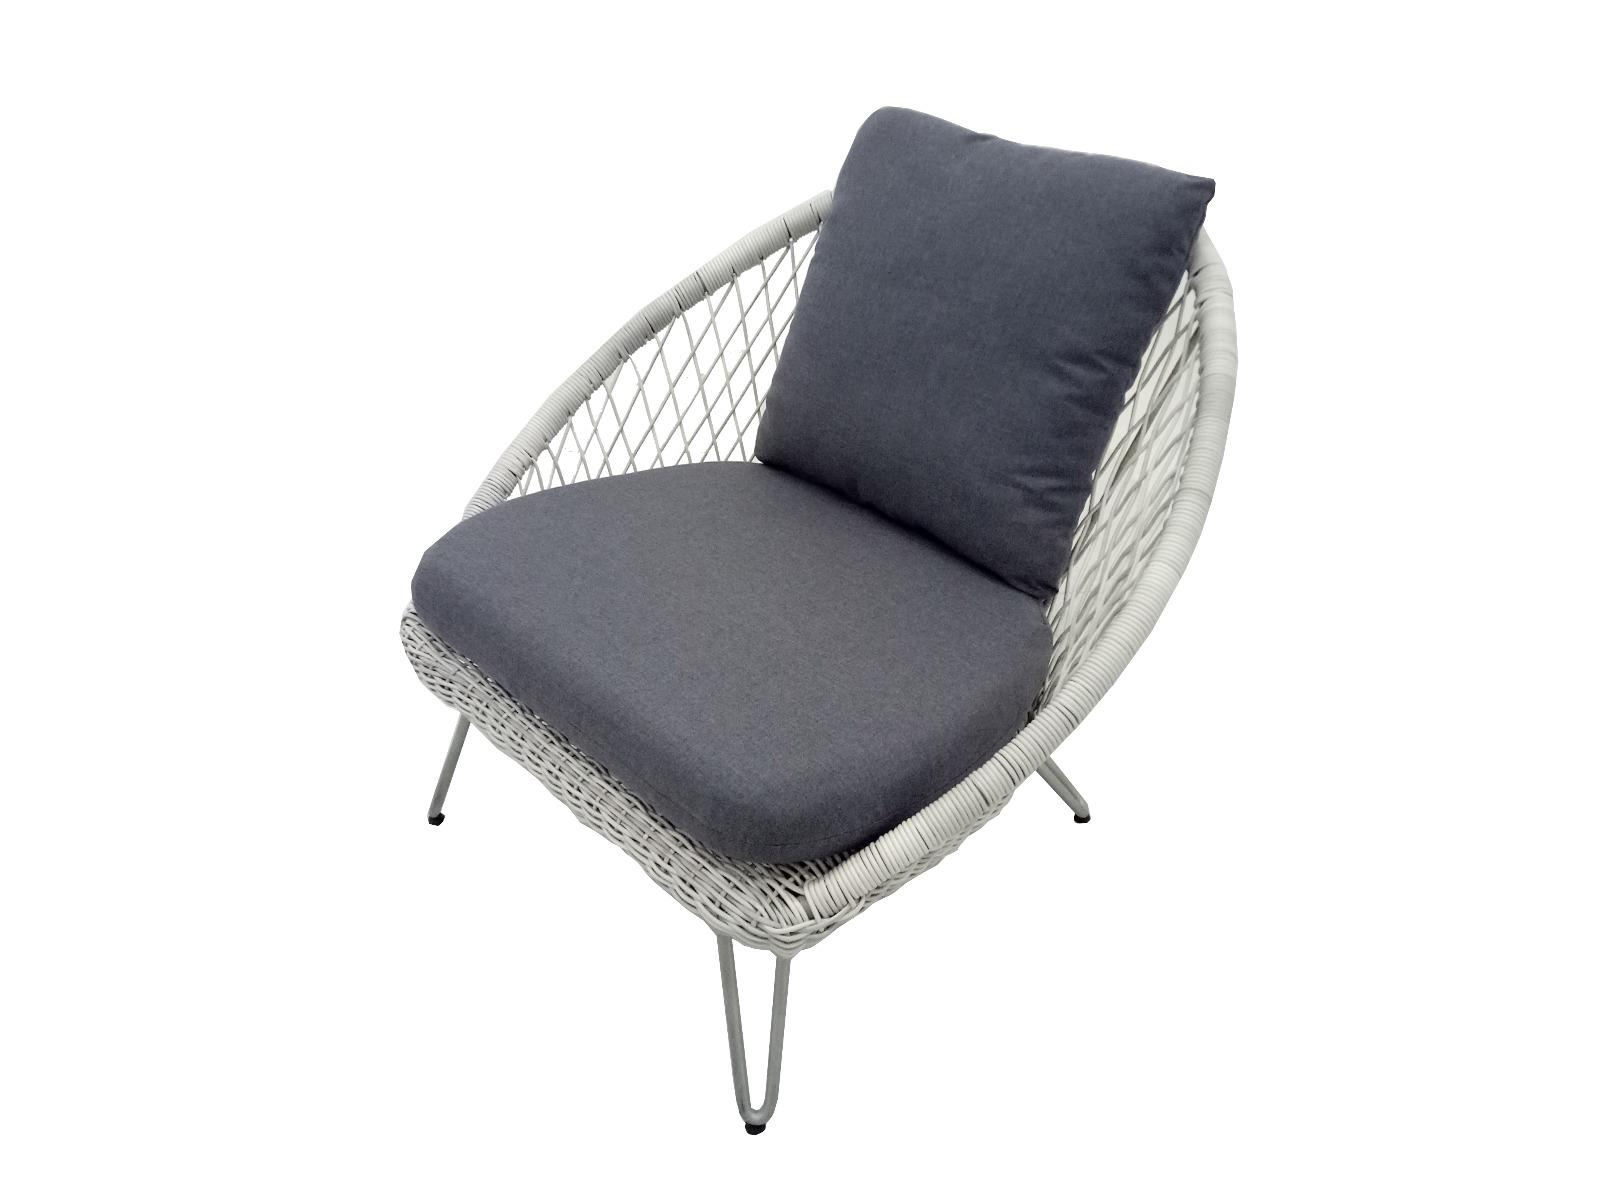 Batea lounge chair